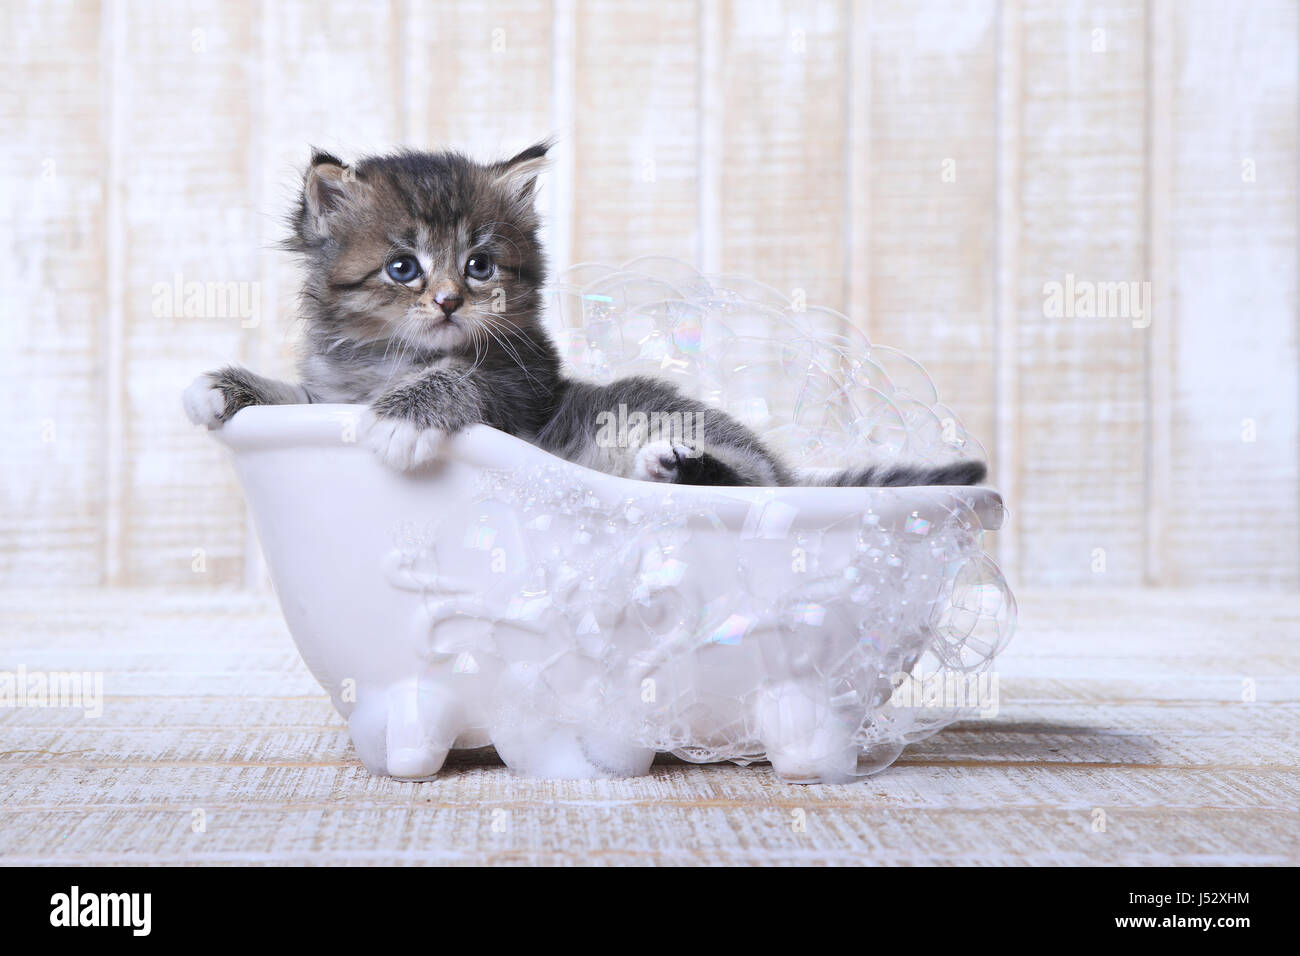 Adorable Tiny Kitten in a Bathtub With Bubbles Stock Photo, Royalty ...